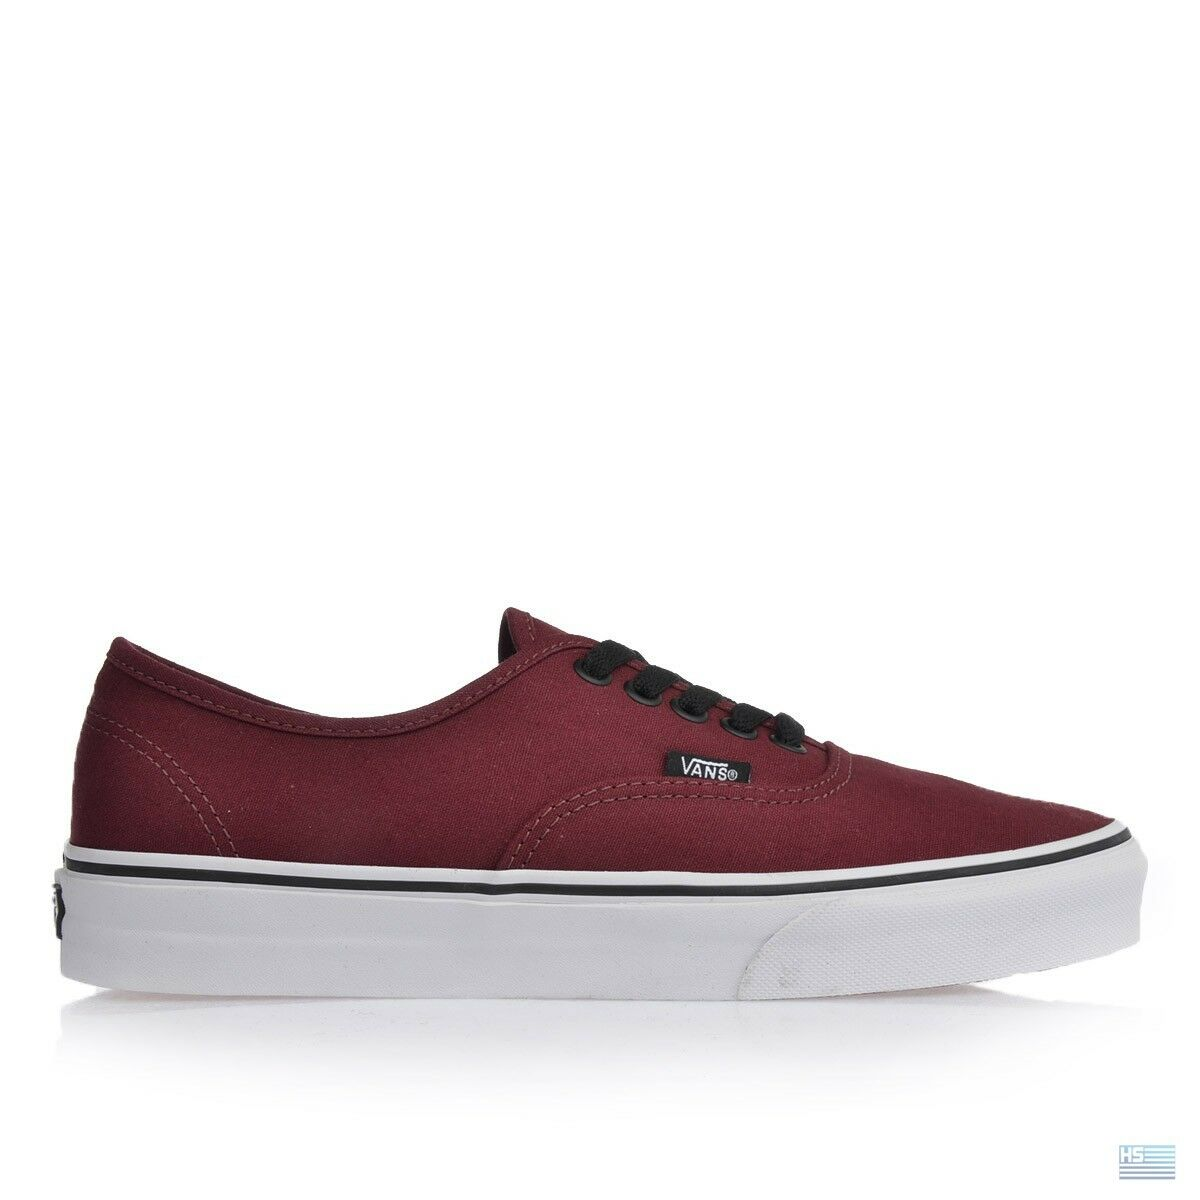 VANS AUTHENTIC BORDEAUX BORDO WEIß SNEAKERS UNISEX Gr.36- Gr.46